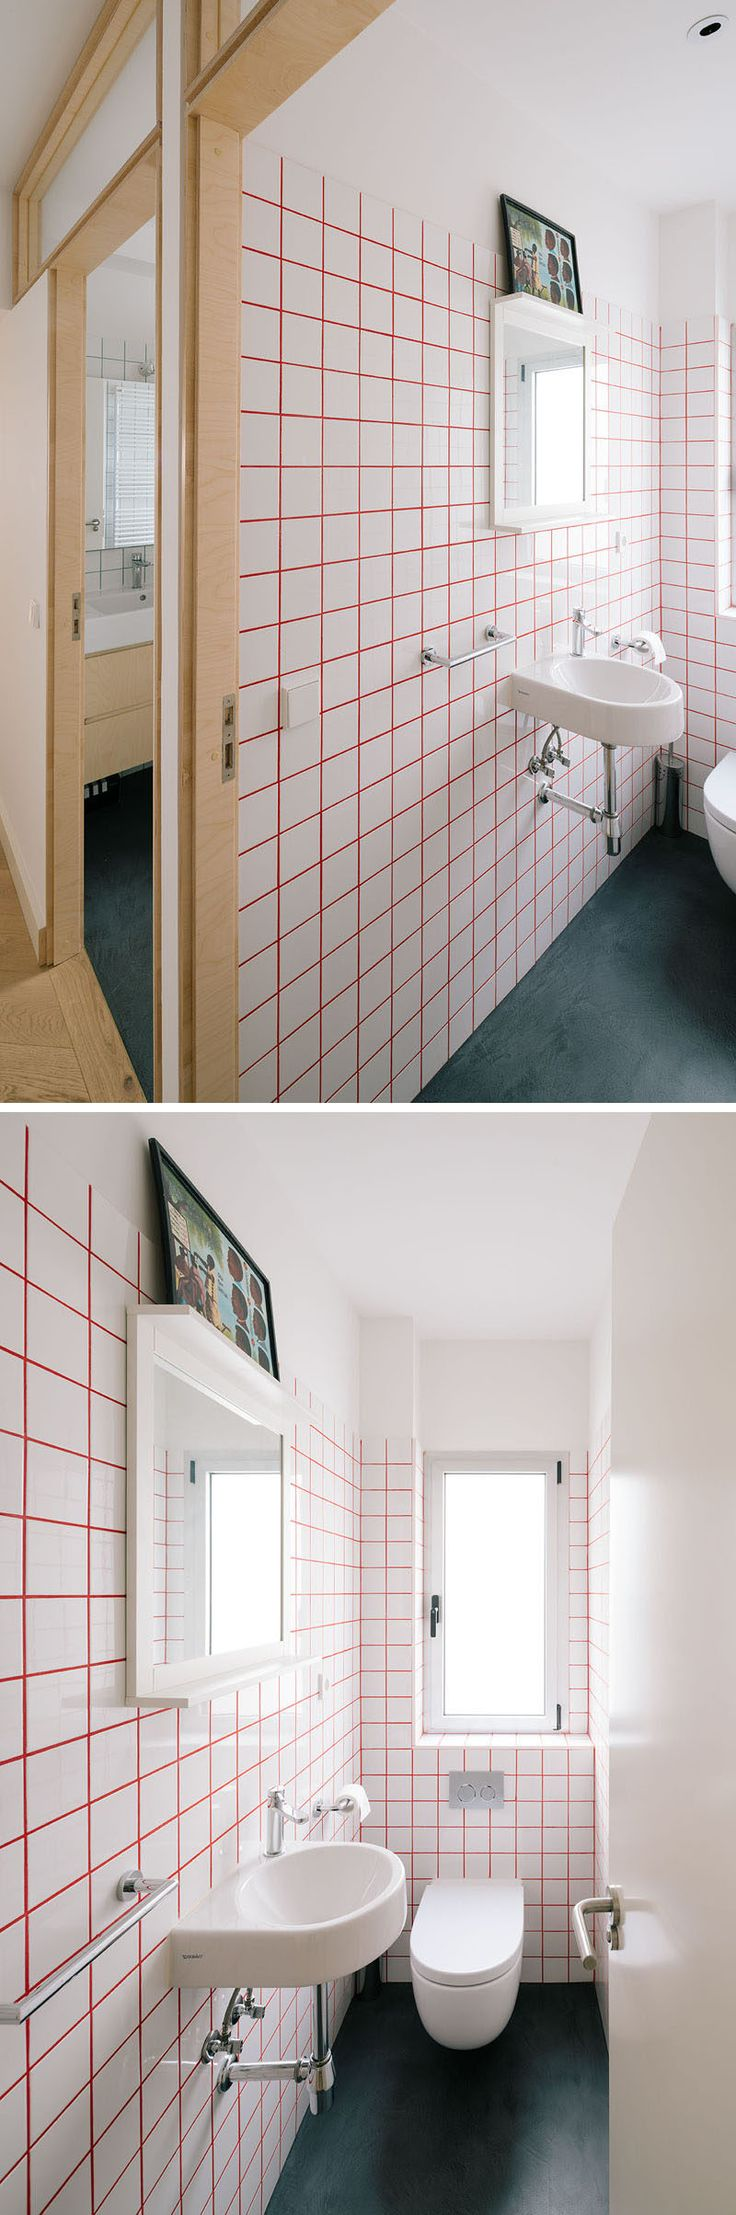 Bright red grout was used between square white tiles to brighten up this bathroom.